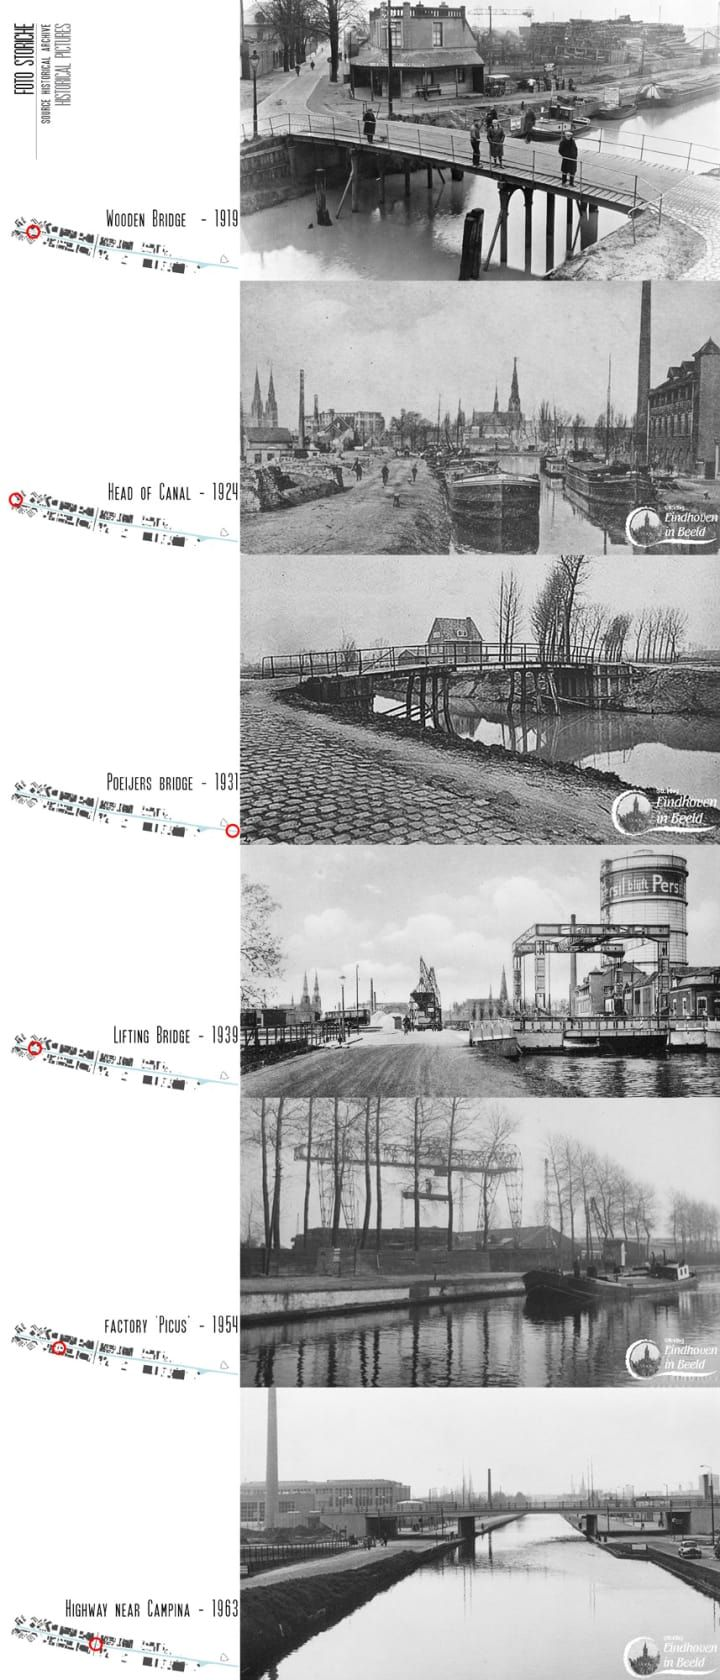 Strategies and actions for Sustainable Urban Design along the canal in Eindhoven (NL)